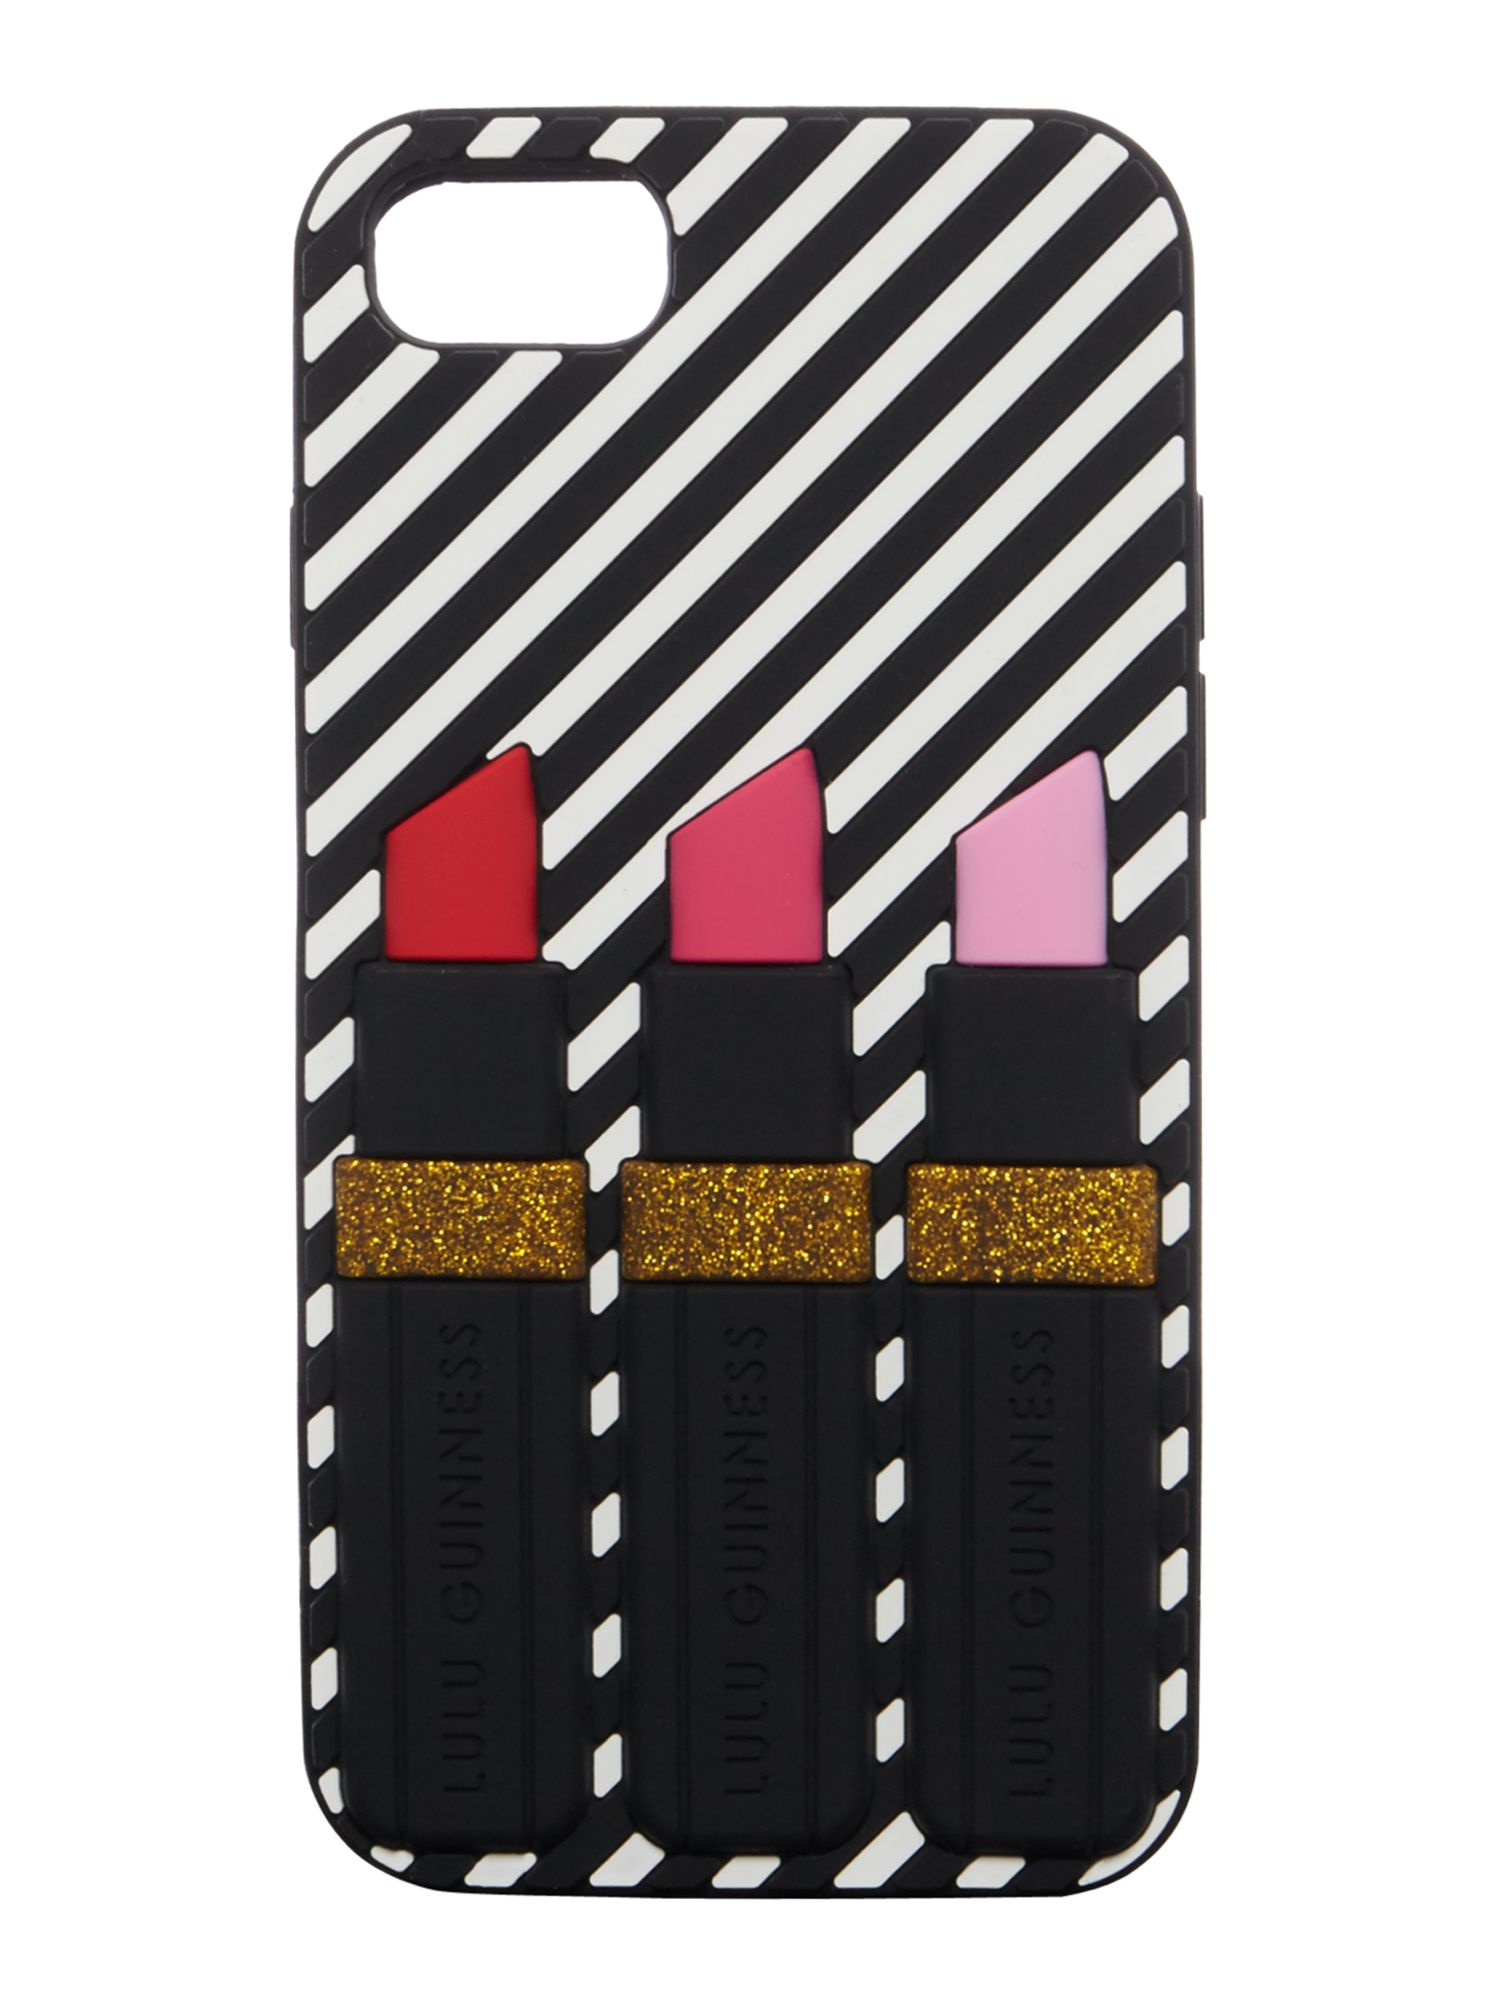 Lulu Guinness Lipstick iphone case, Multi-Coloured